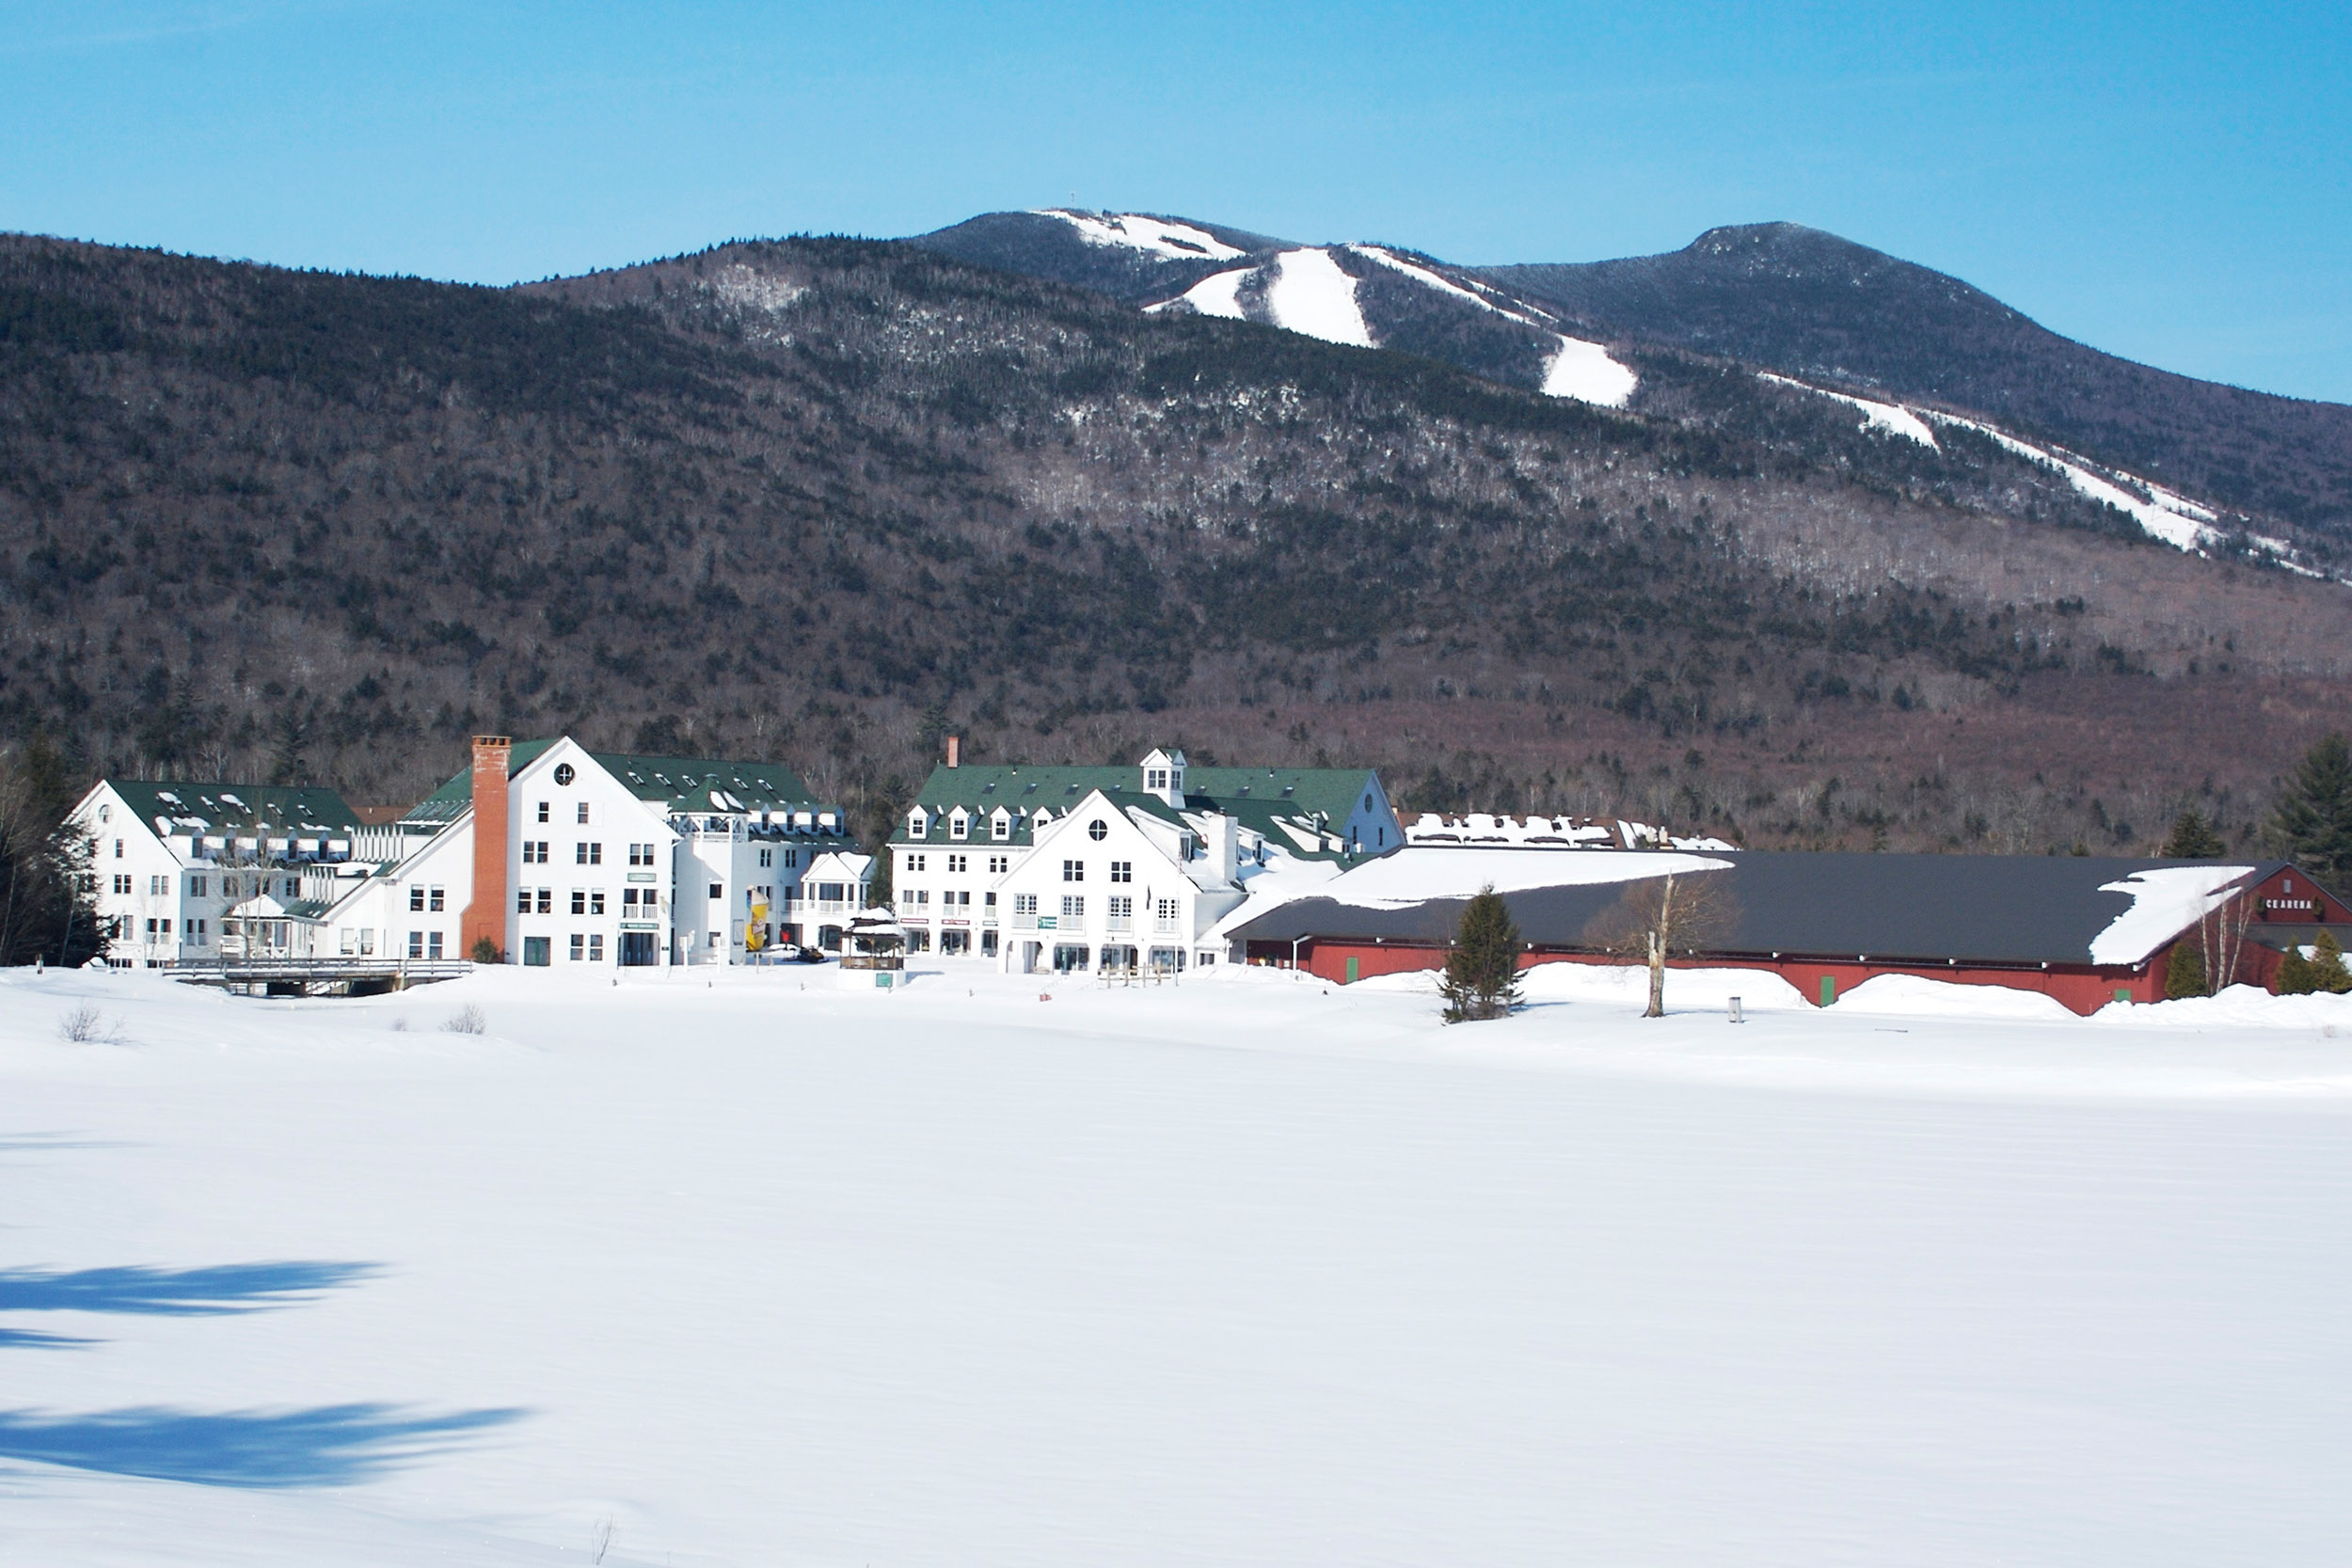 Work in the middle of the beautiful White Mountain National Forest at Waterville Valley Resort